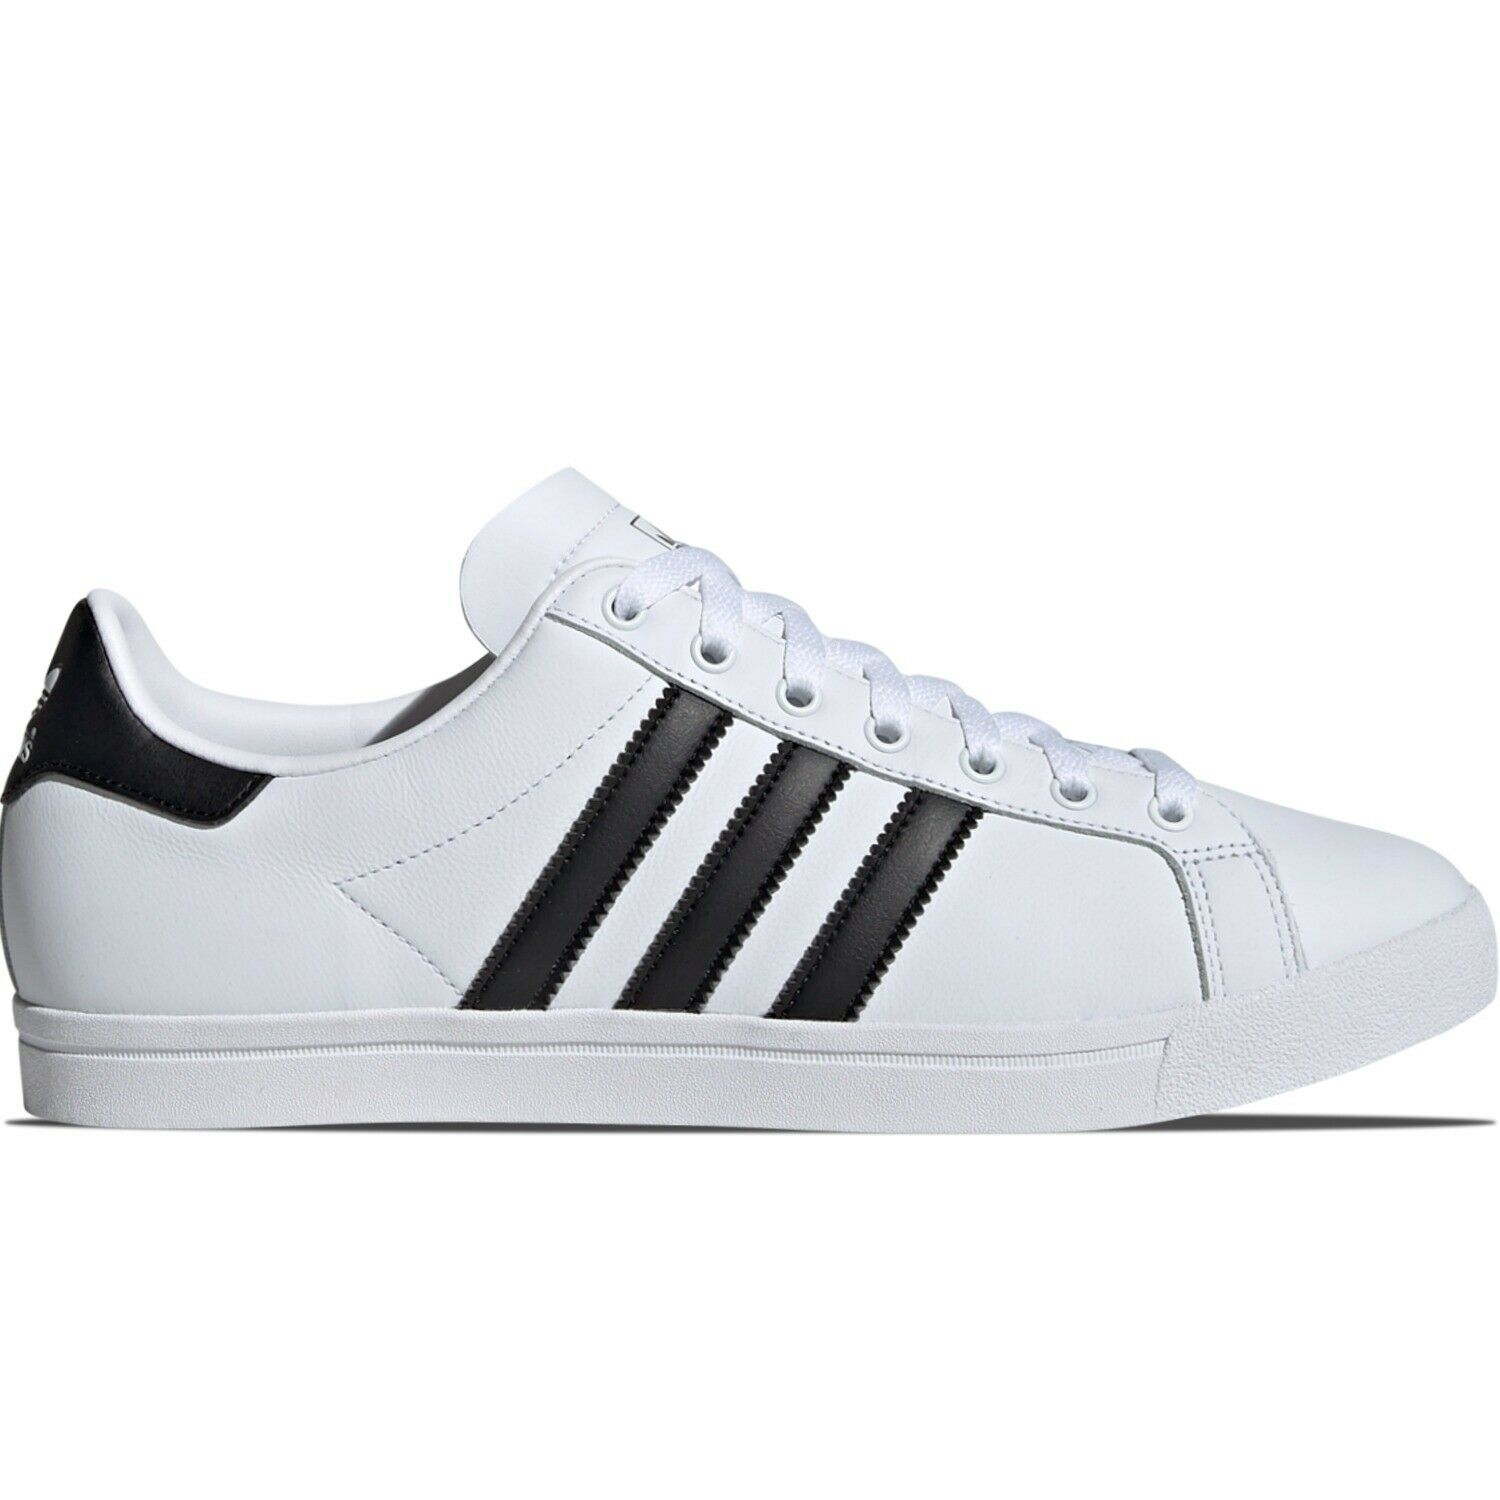 b2ef8aae49780 Adidas Coast Star Star Star Men s Walking shoes Sneakers White NEW EE8900  611e23